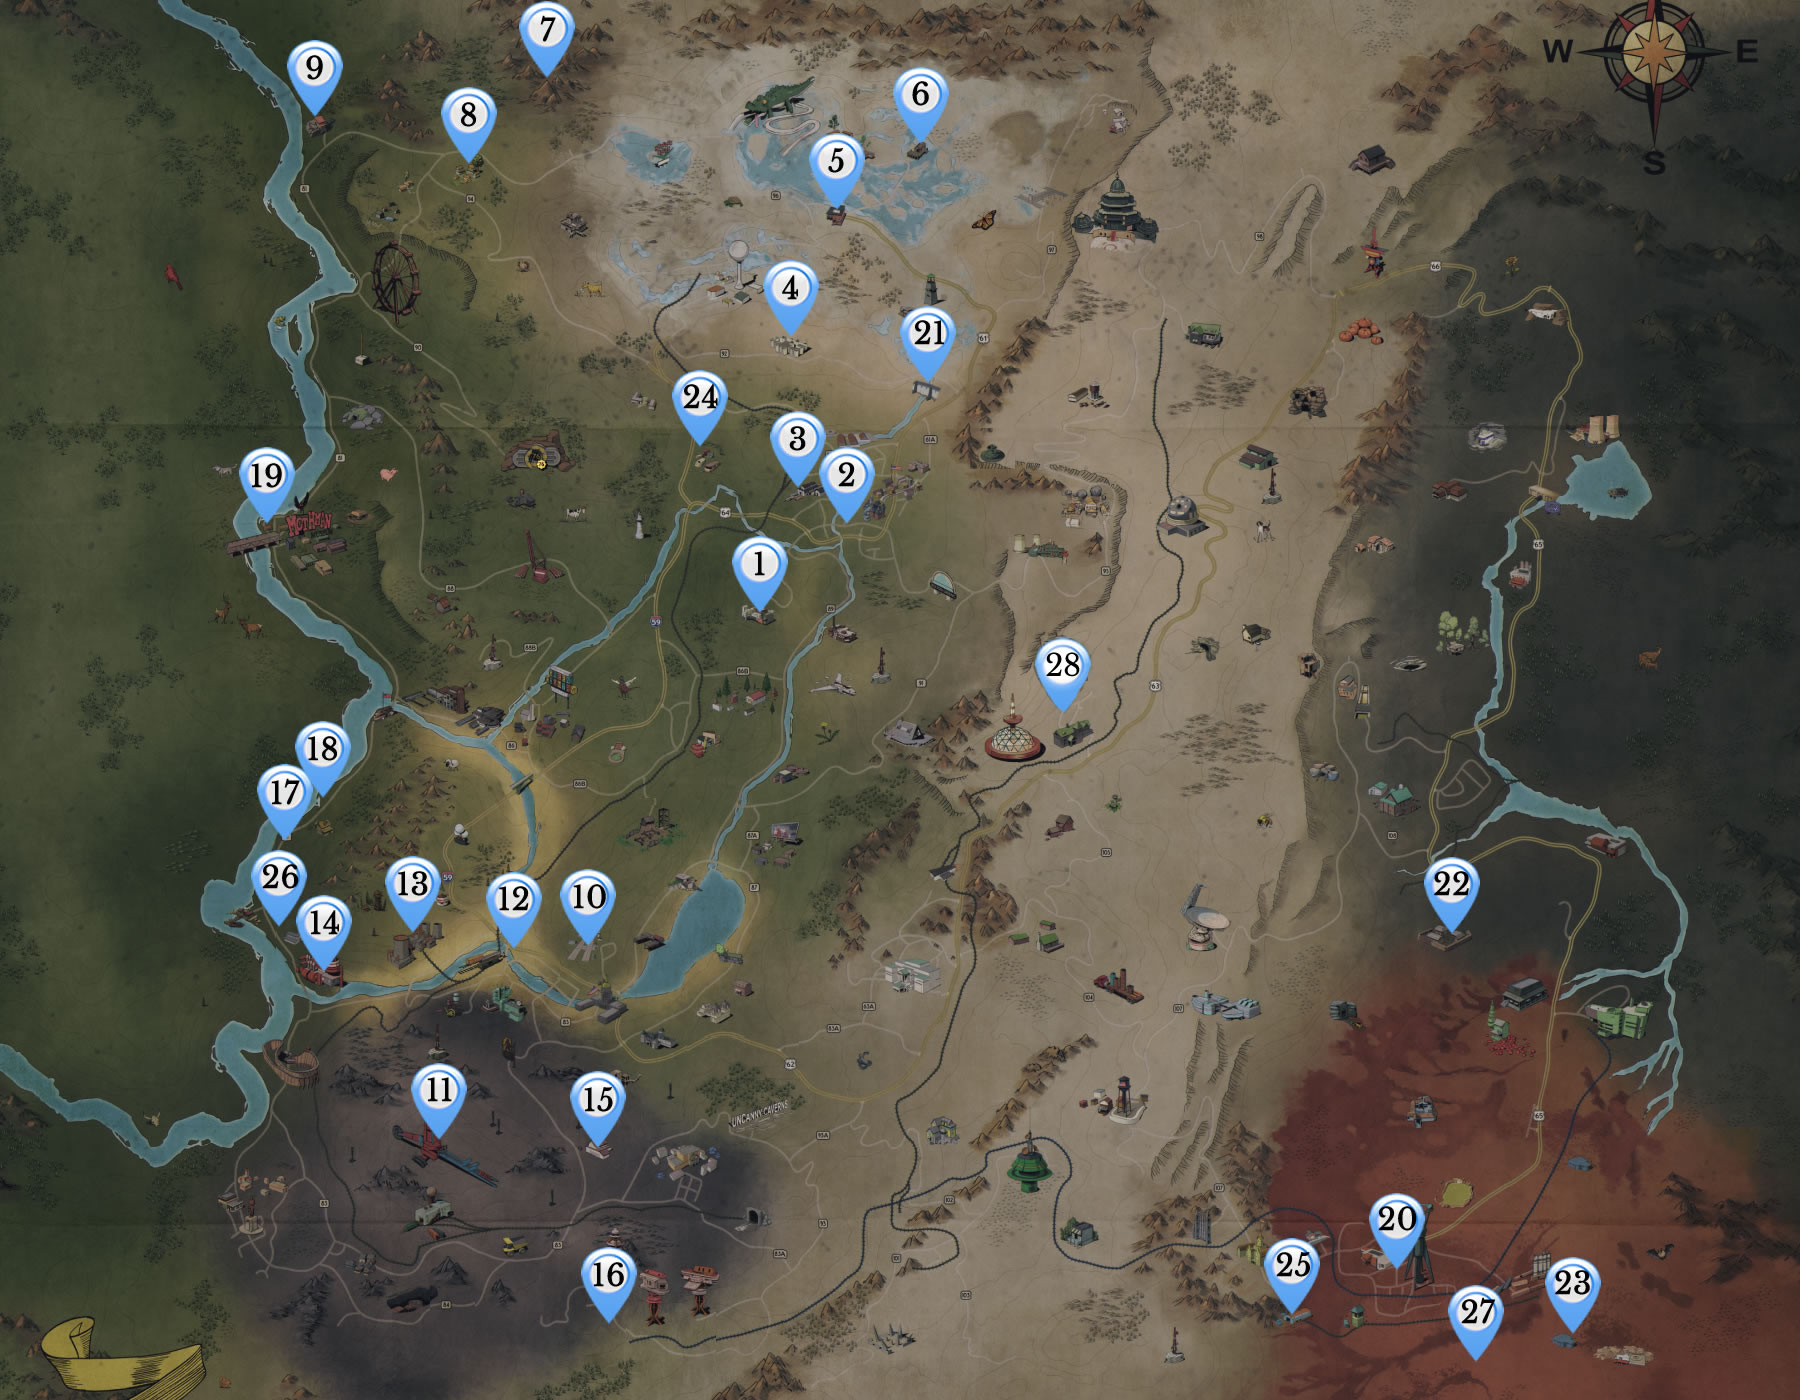 Fallout 76 Power Armor Locations - an in-depth Guide by